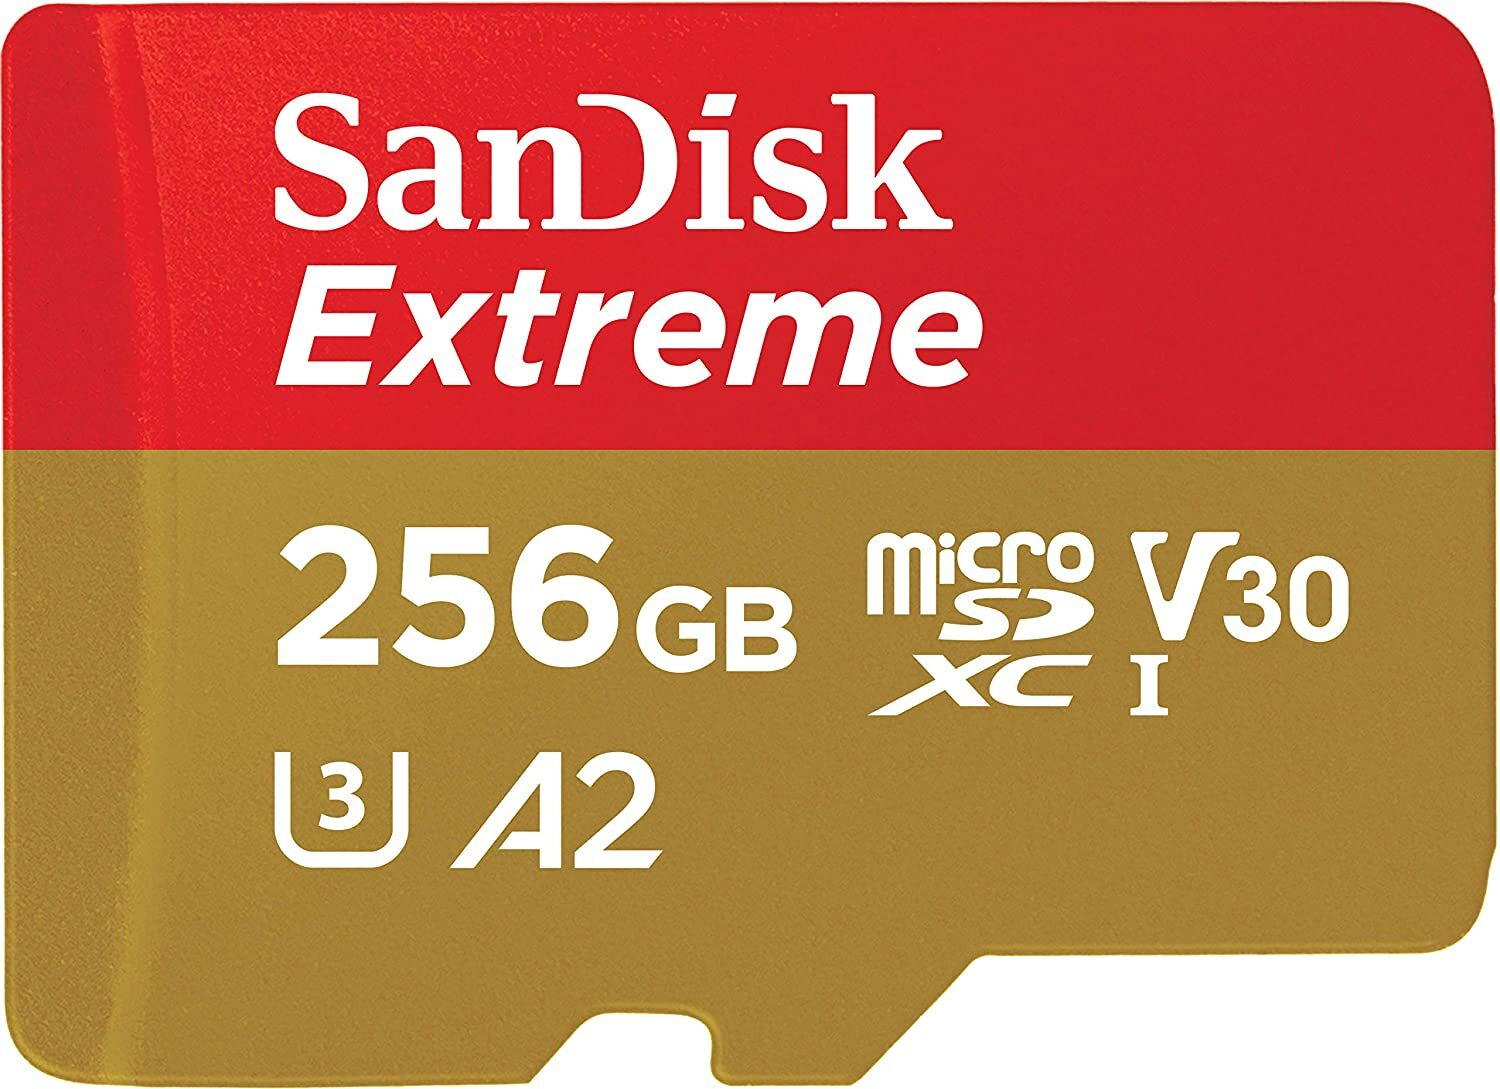 SanDisk Extreme 256GB Micro SD Card SDXC UHS-I Action Camera GoPro Memory Card 4K U3 160Mb/s A2